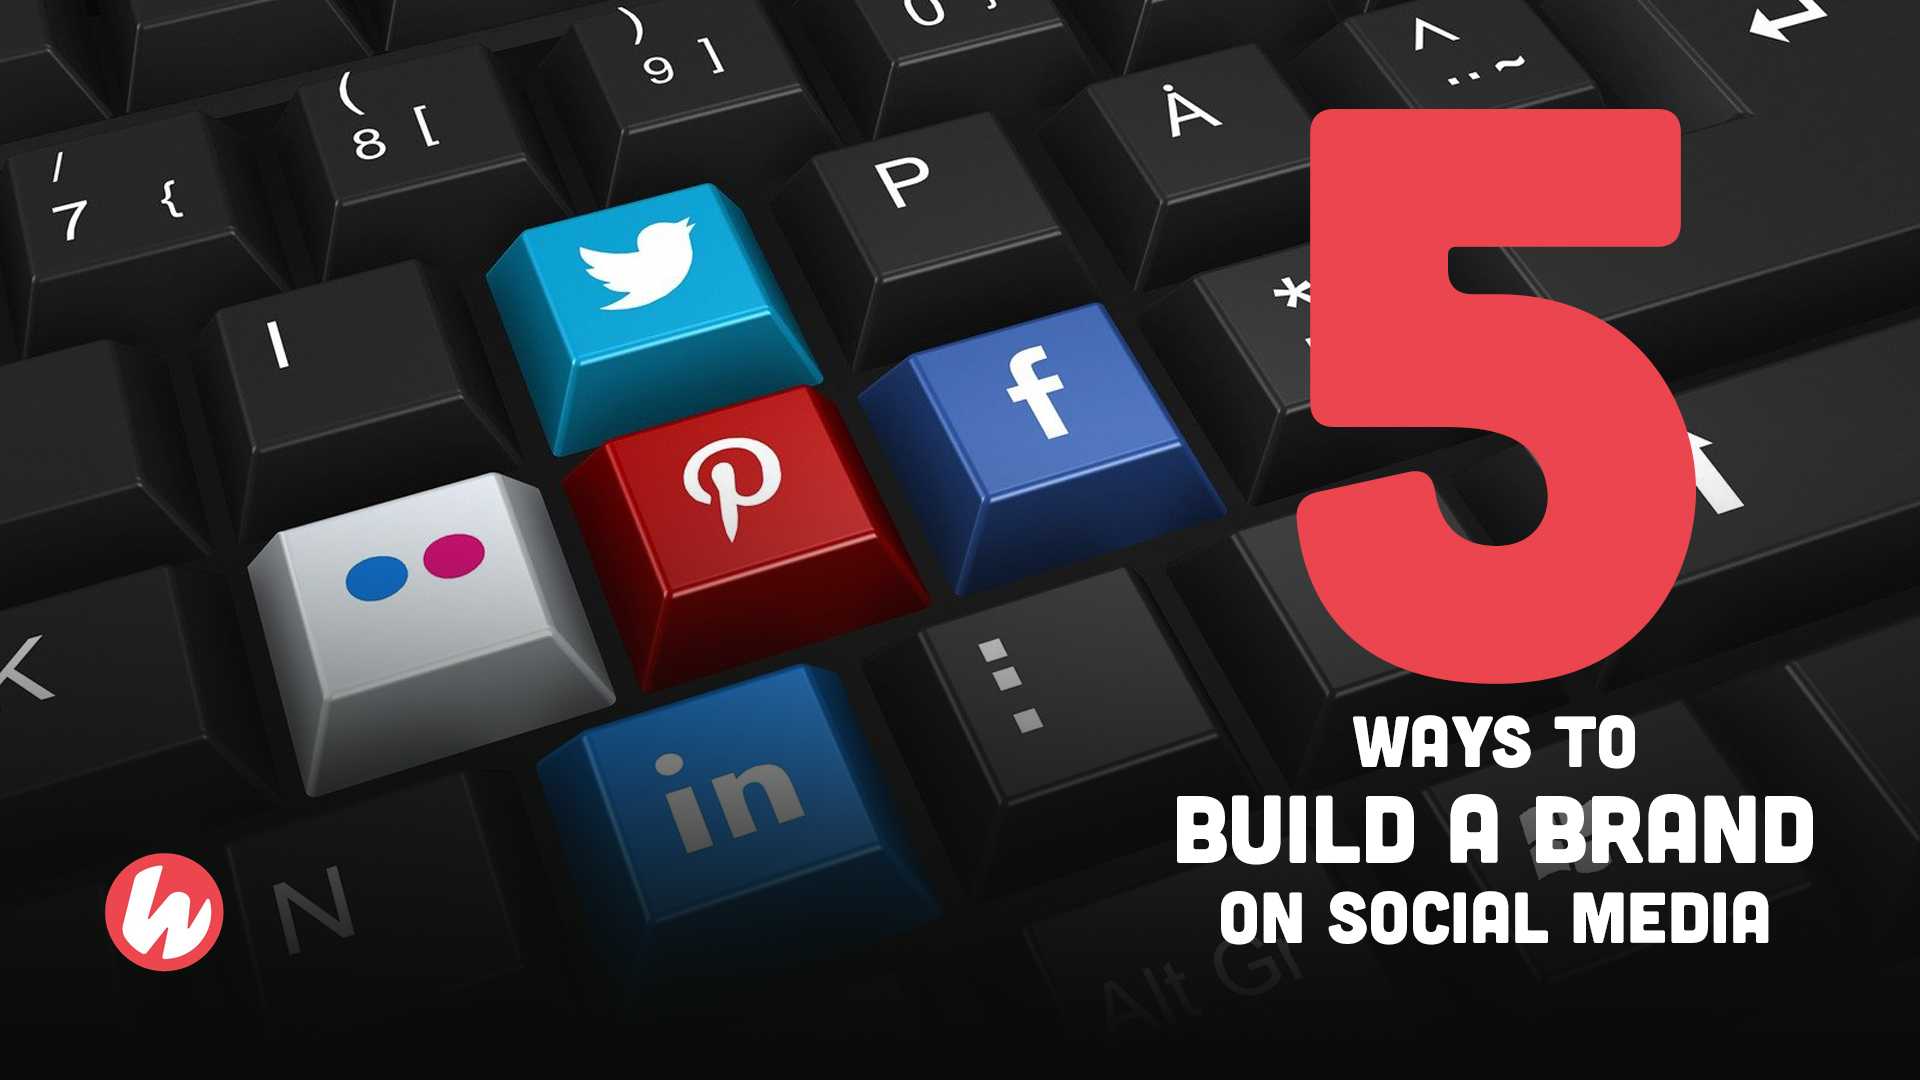 5 ways to build a brand on social media